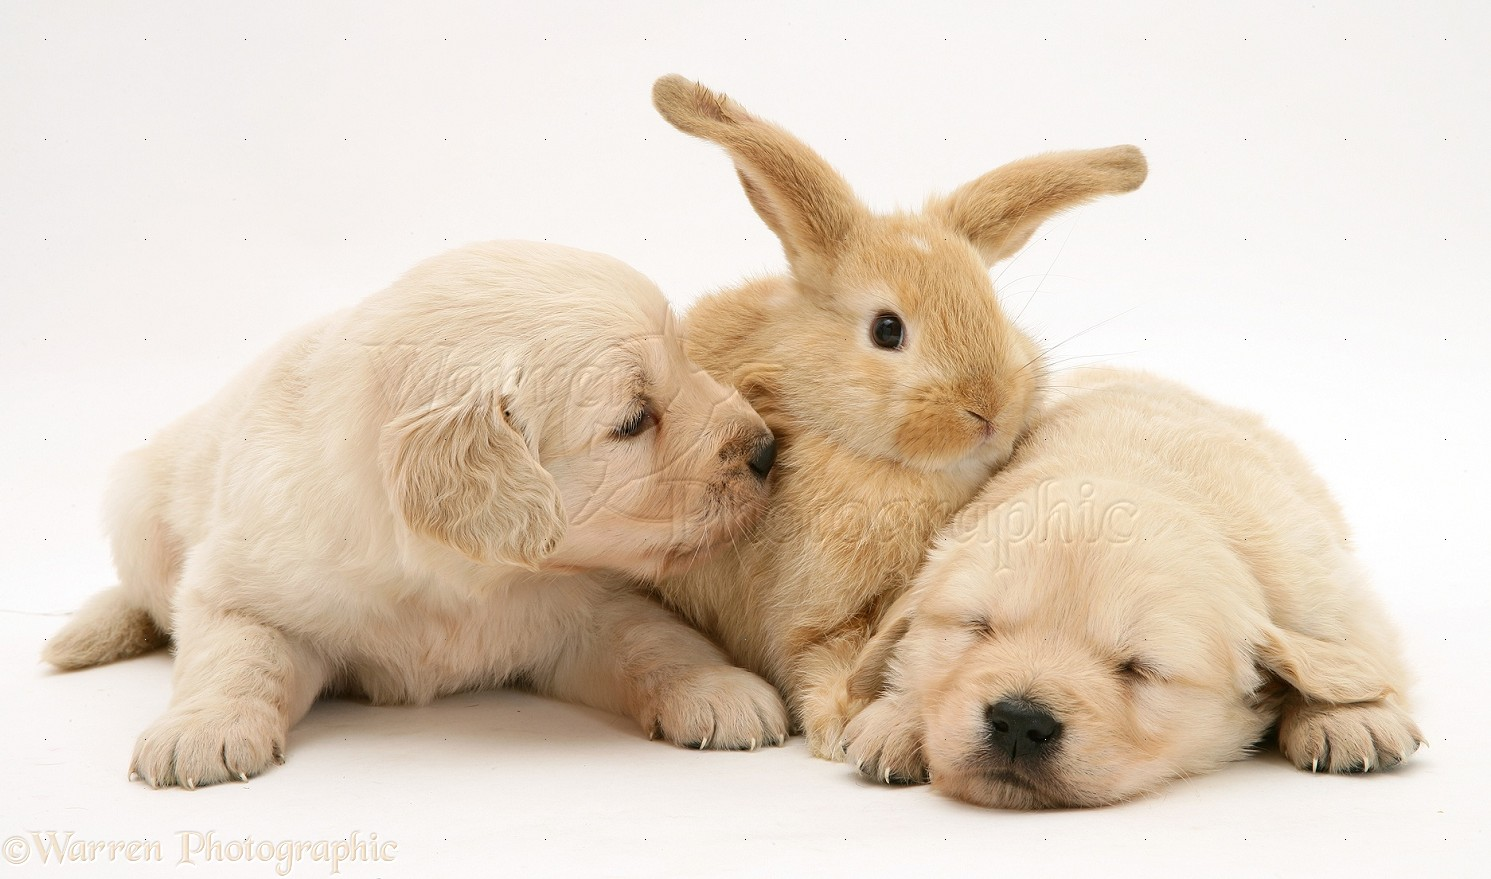 Baby sandy Lop rabbit with Golden Retriever pups photo - WP10573